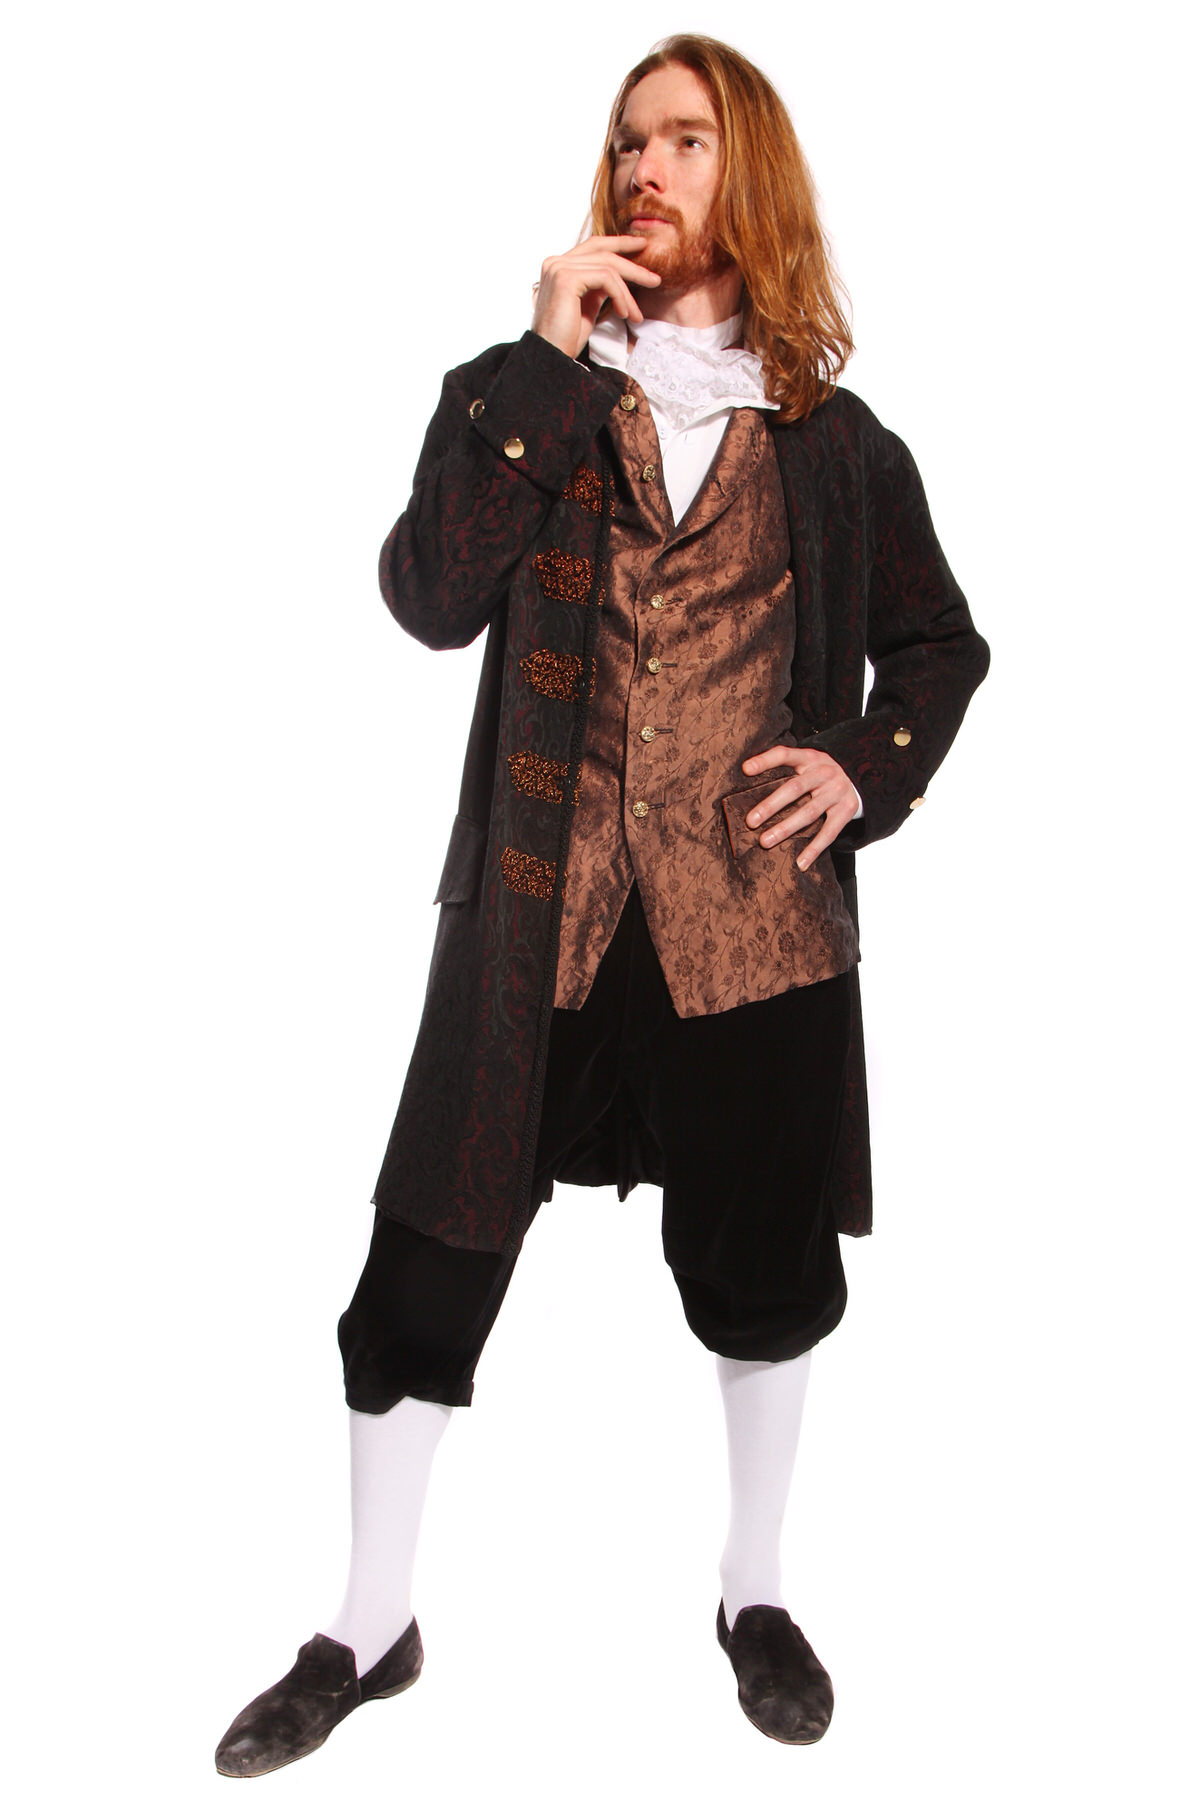 GEORGIAN GENT BROWN BROCADE COSTUME